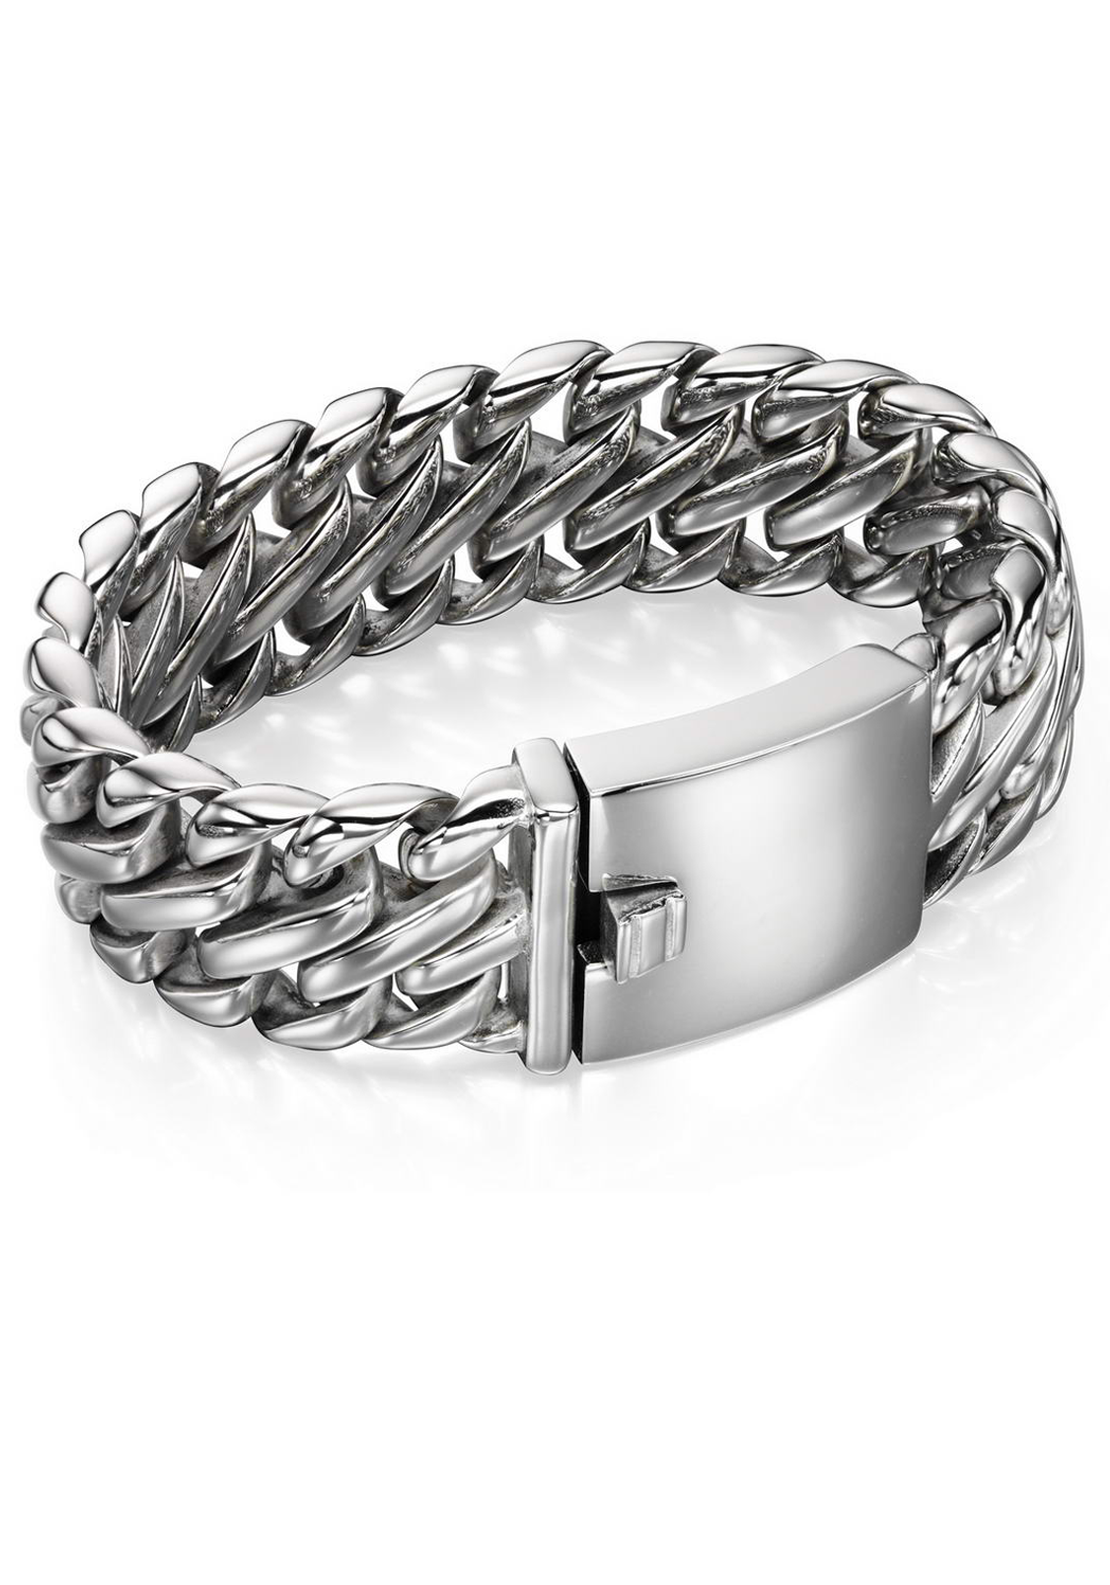 Fred Bennett Chunky Tri-Link Bracelet for Men, Silver